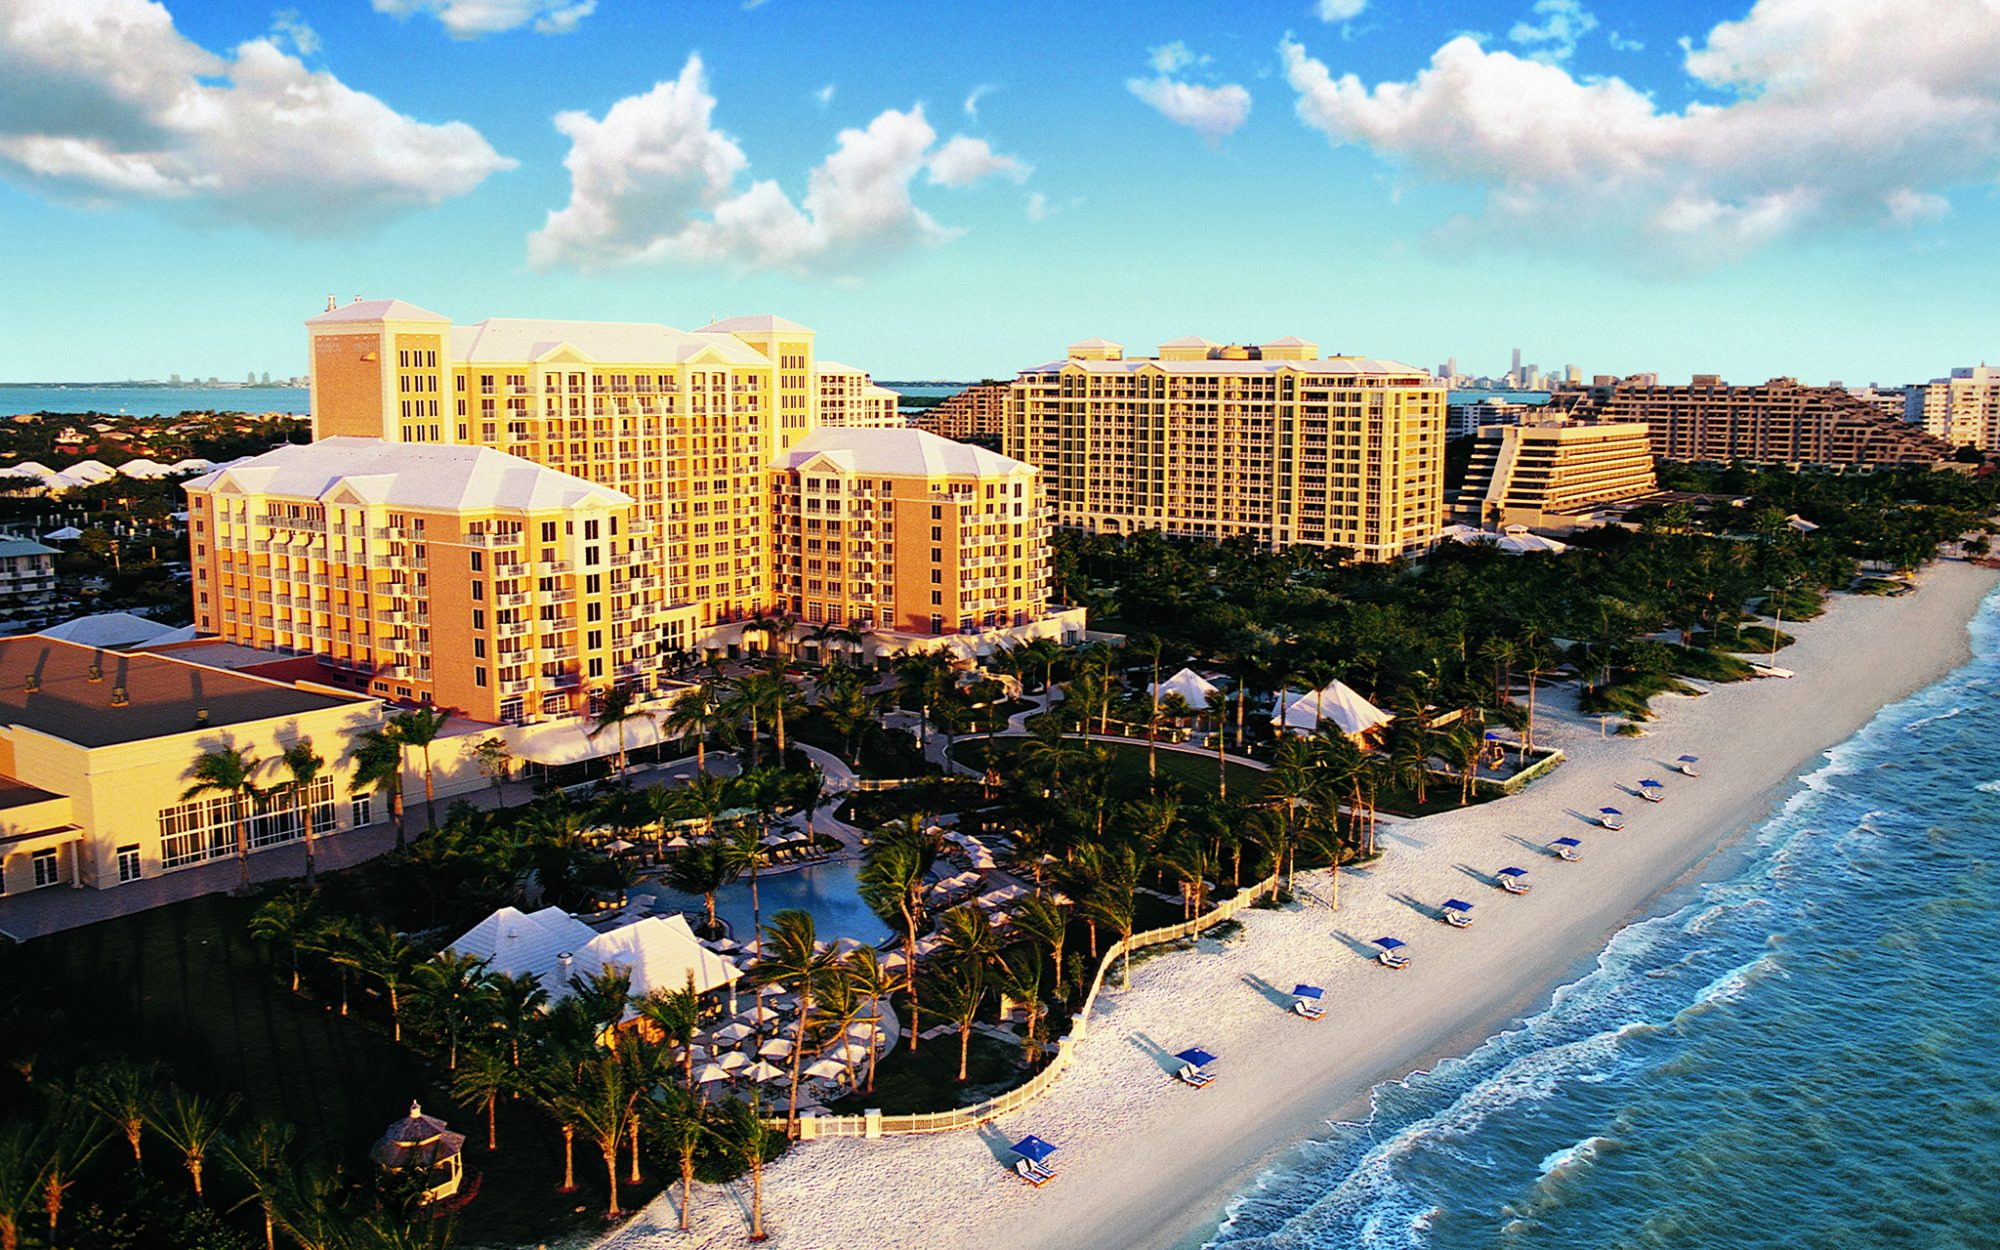 Best Family Beach Hotels: No. 16 Ritz-Carlton, Key Biscayne, FL